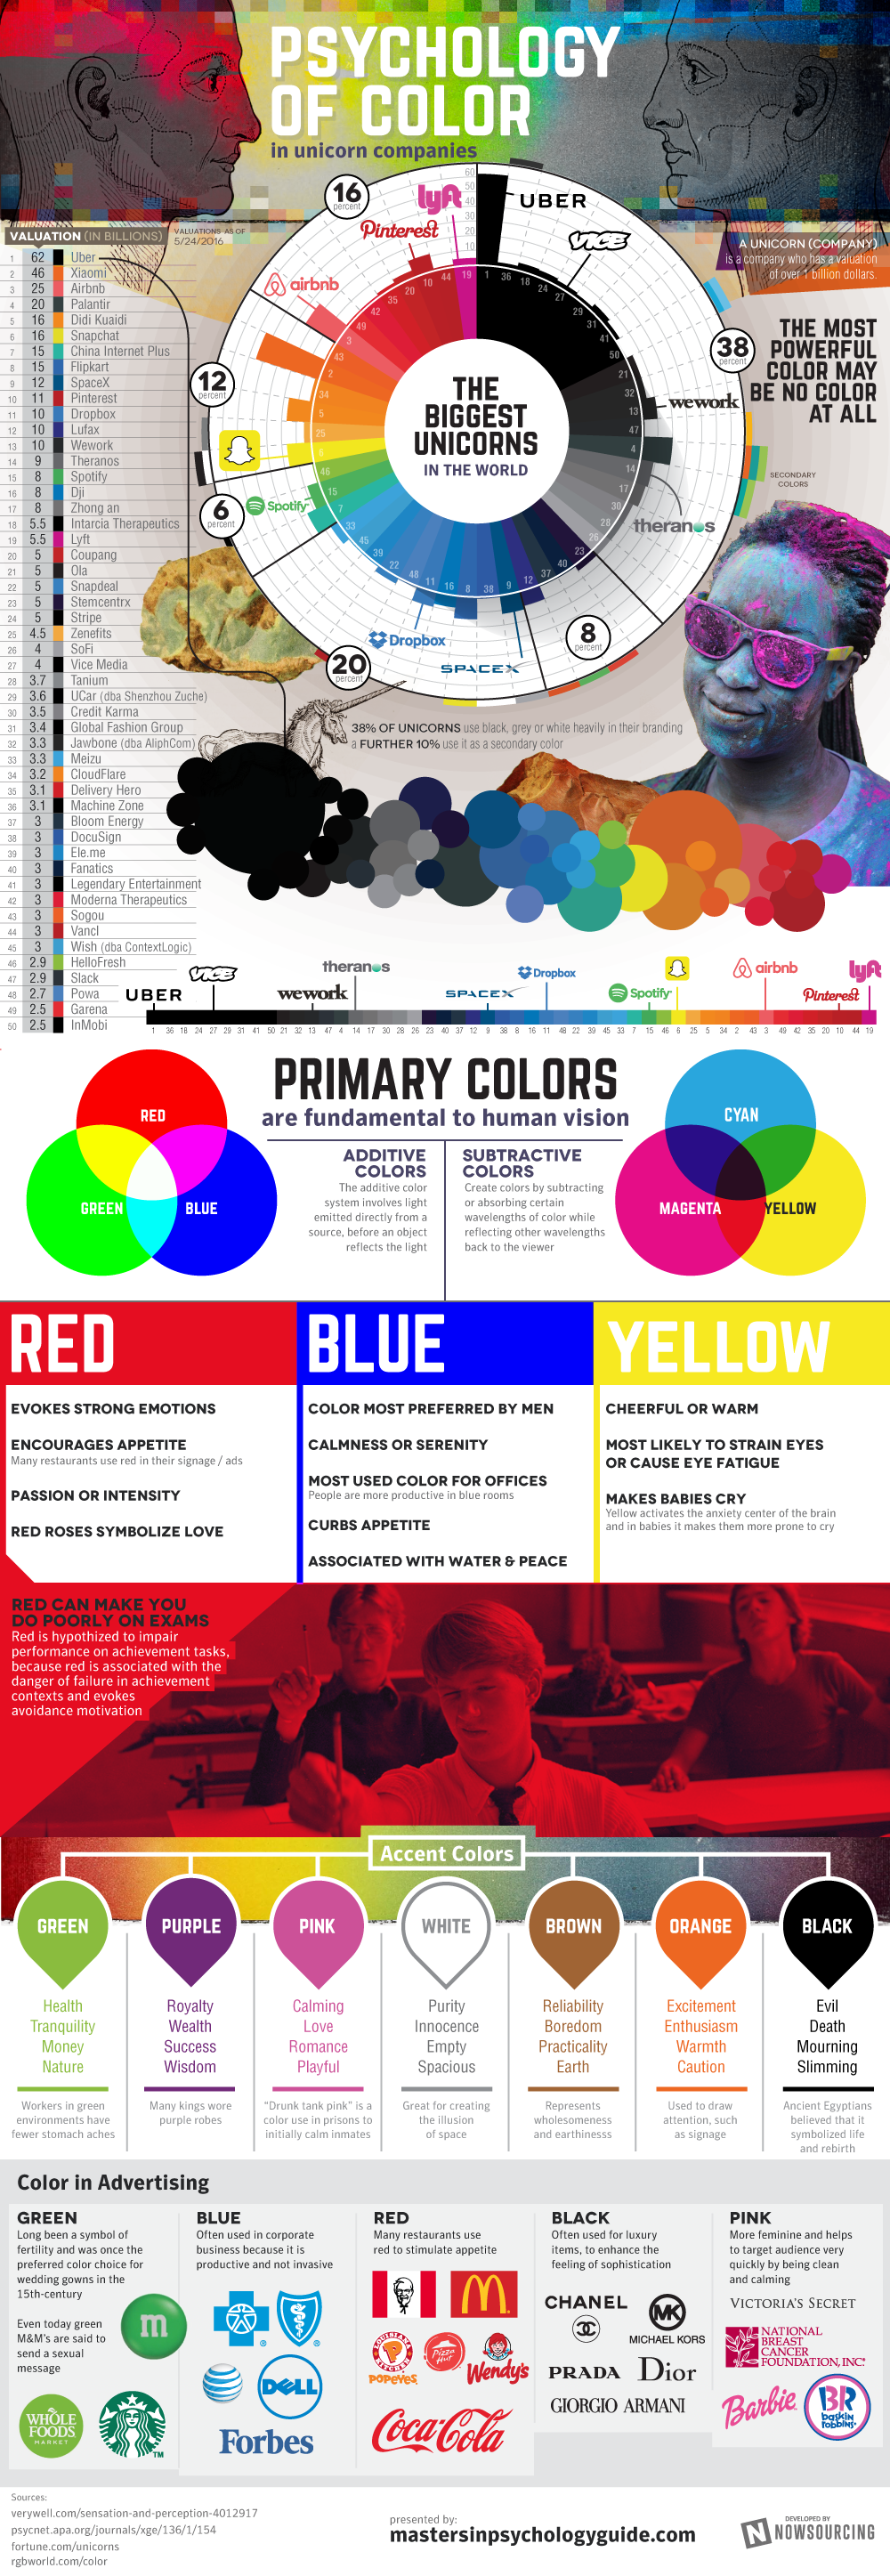 How are the World's Most Successful Brands Using the Psychology of Color in their Branding